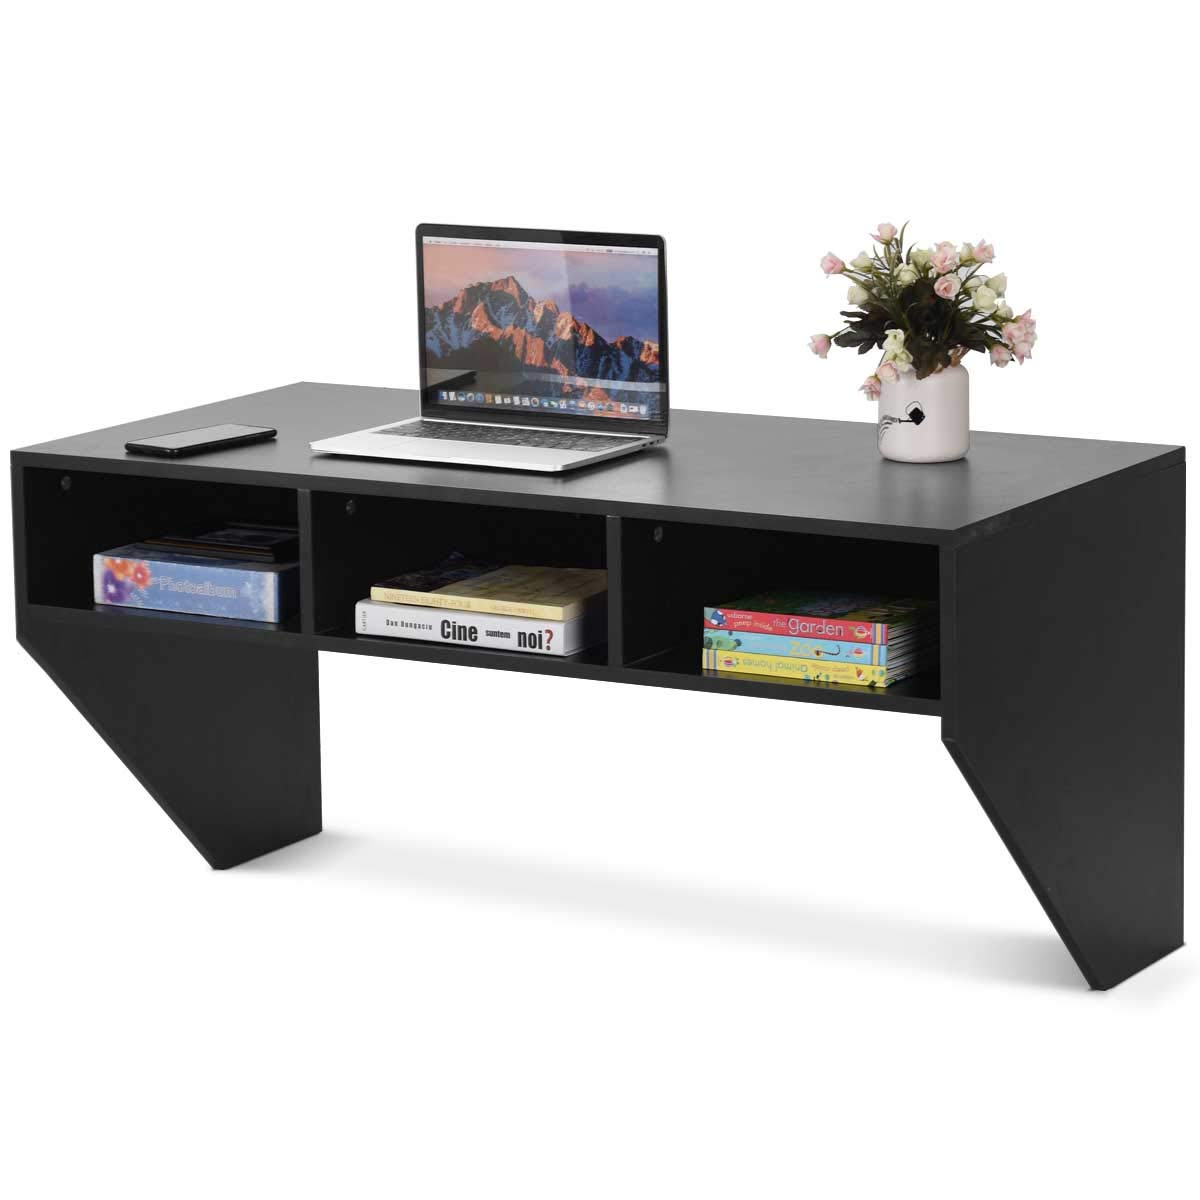 Shelf Computer-Table Floating Desk Costway Storag Wall-Mounted Office Furni Sturdy Home